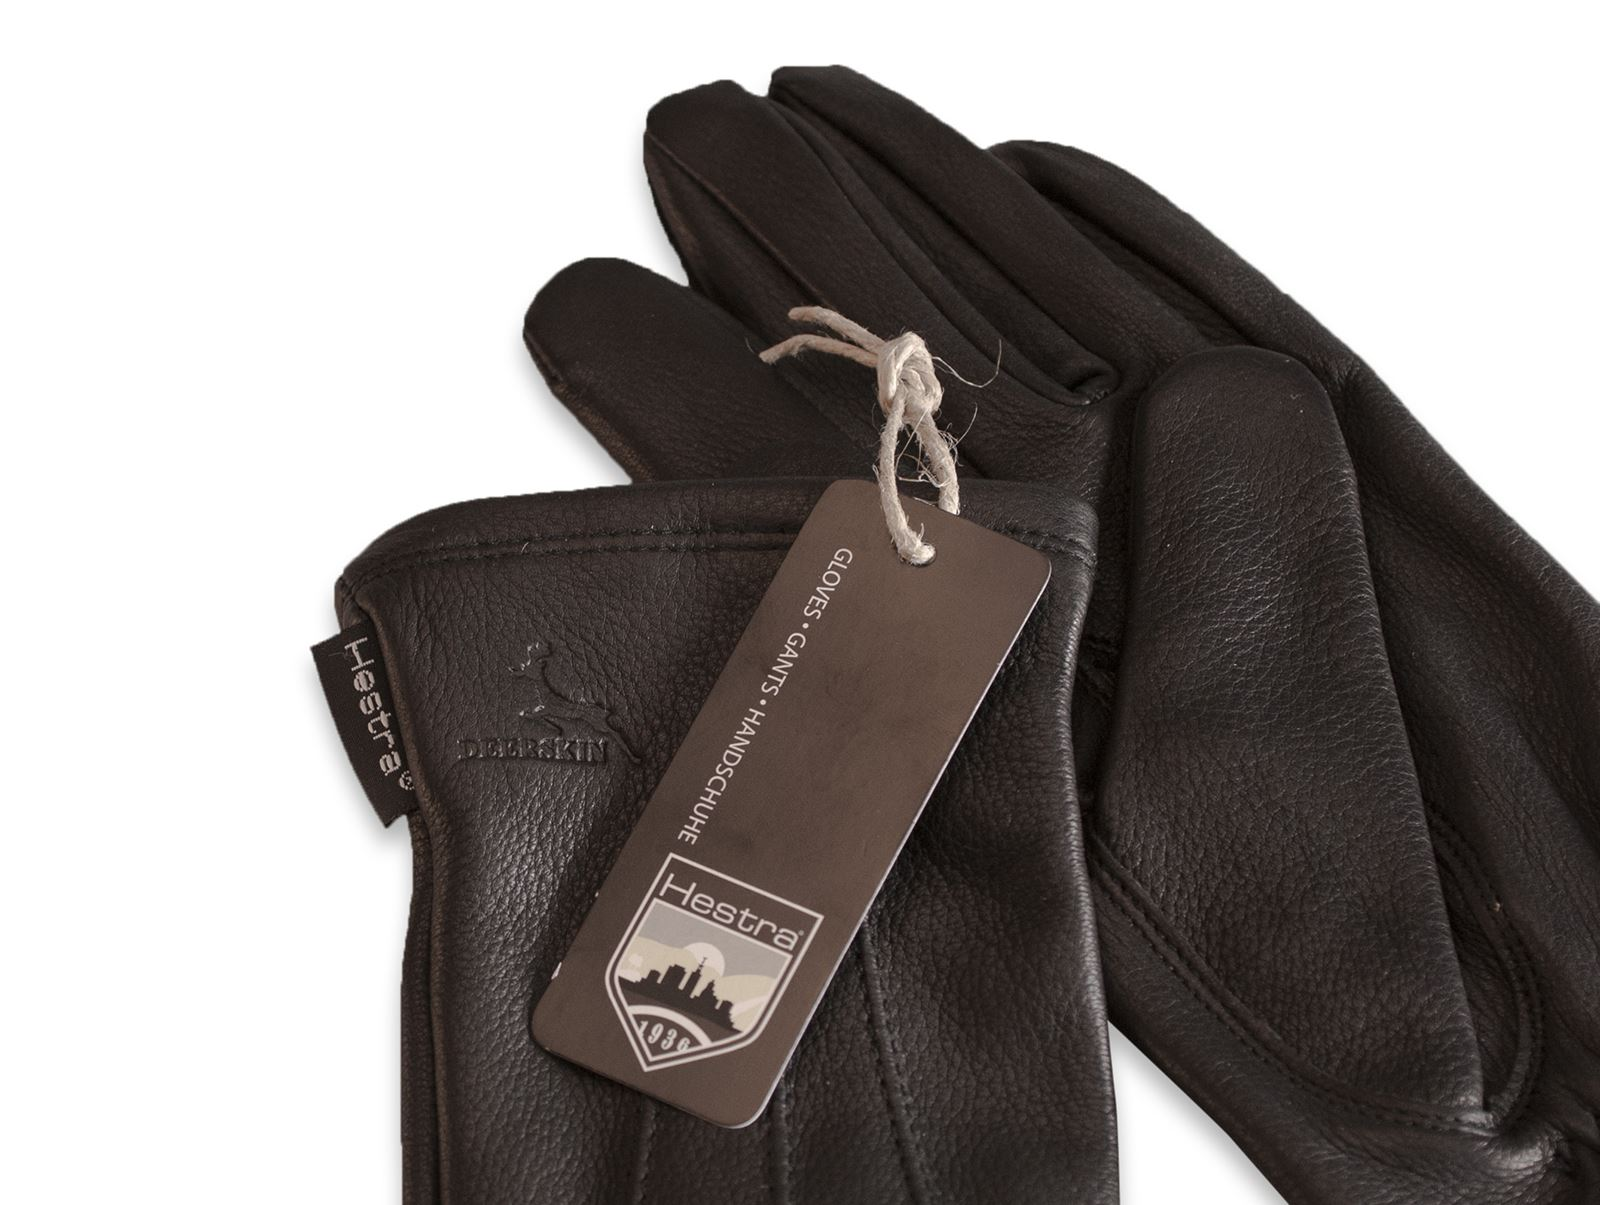 Womens lined leather gloves - Hestra Premium Ladies Deerskin Leather Gloves Silk Lined